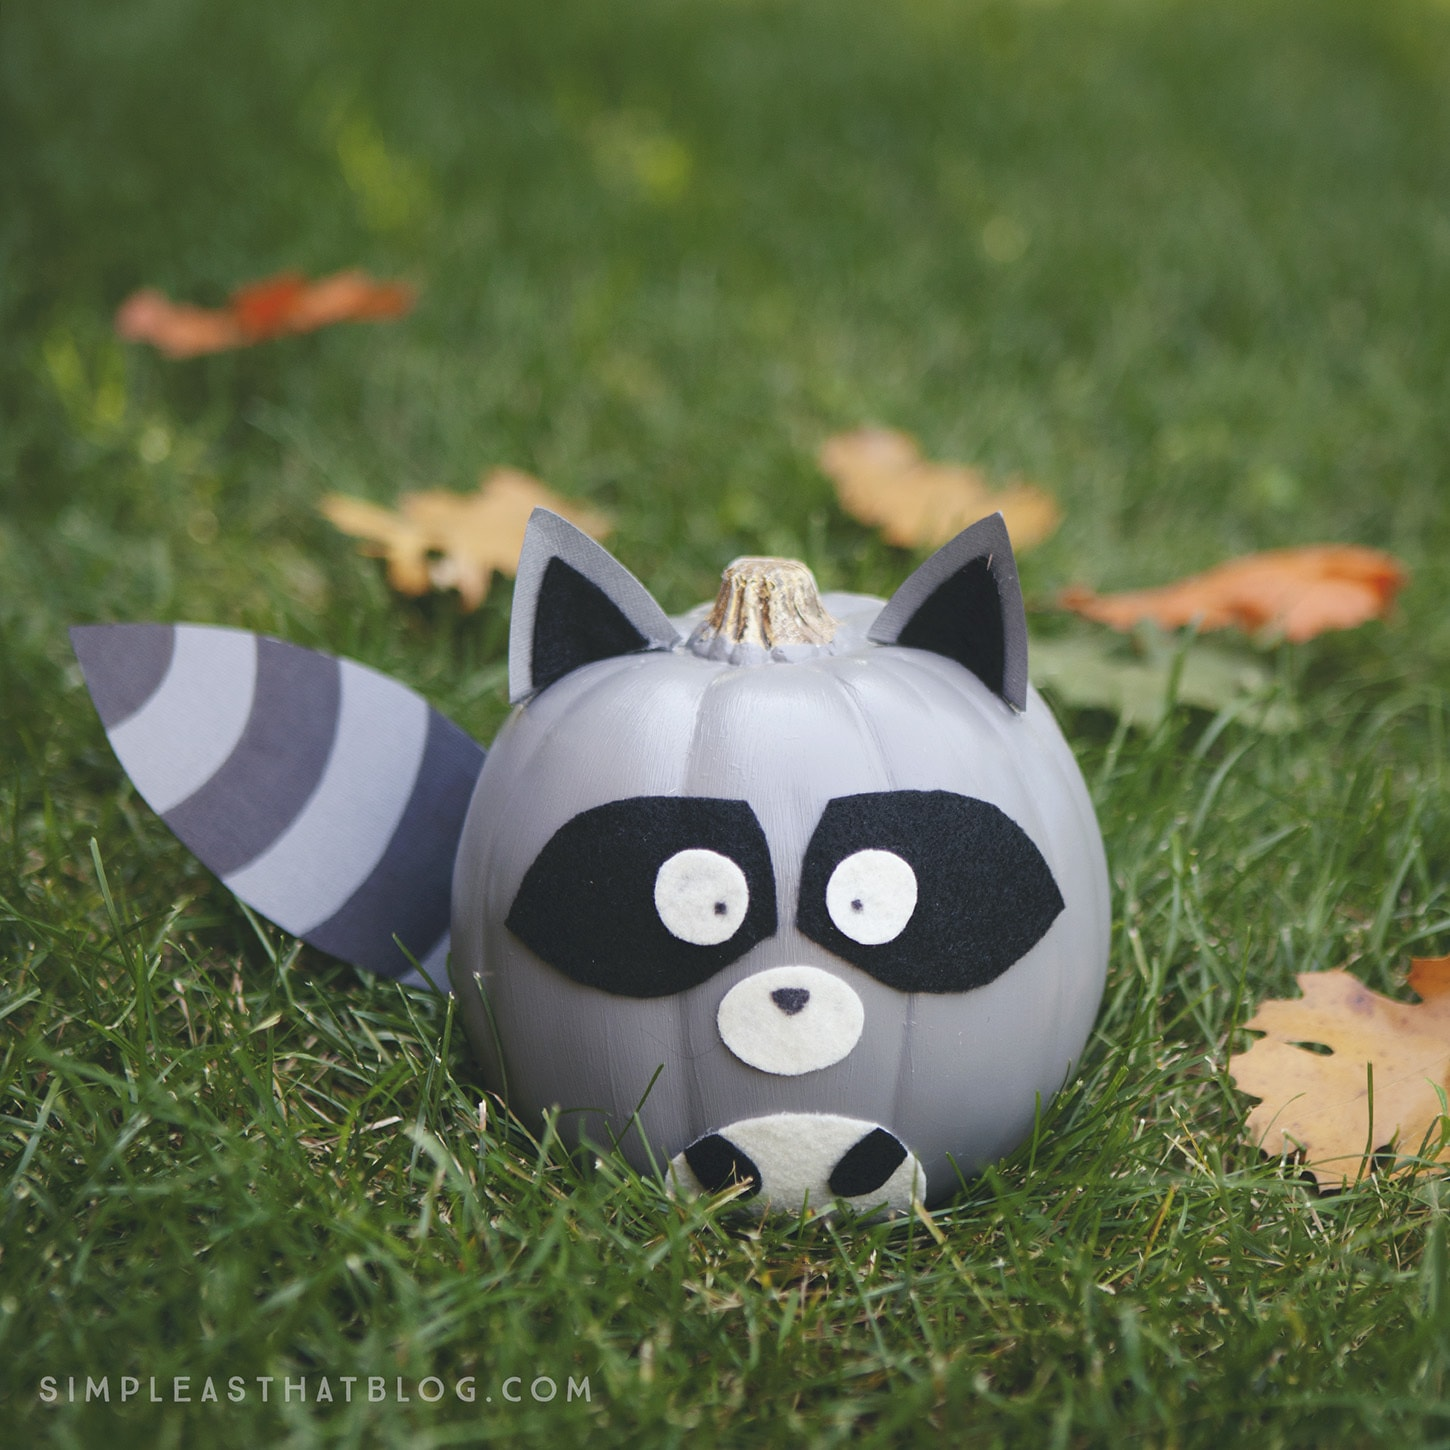 13 Not So Scary Halloween No-Carve Pumpkin Ideas for Kids